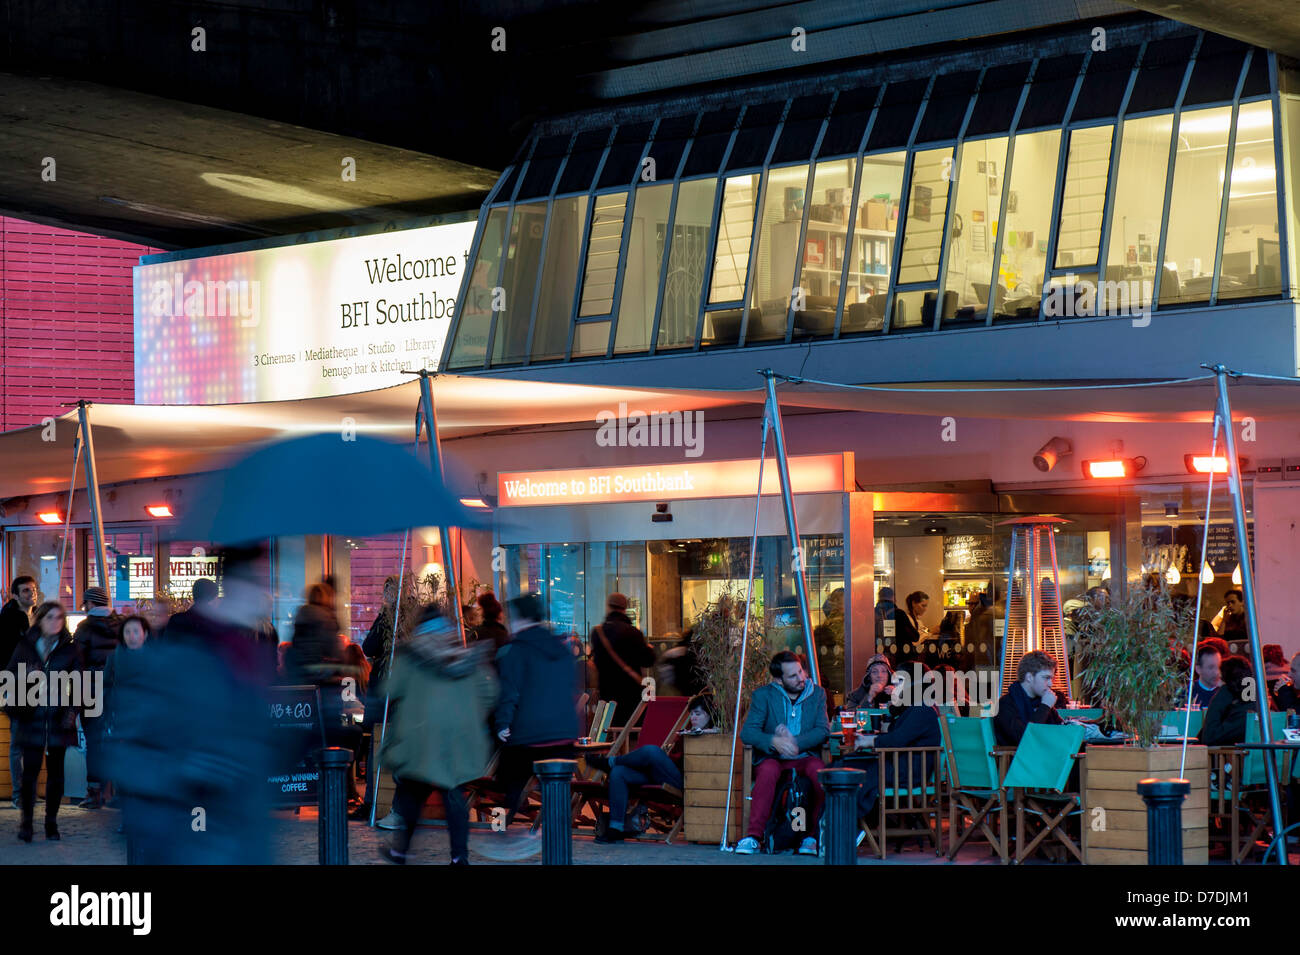 Southbank Centre, London, United Kingdom - Stock Image